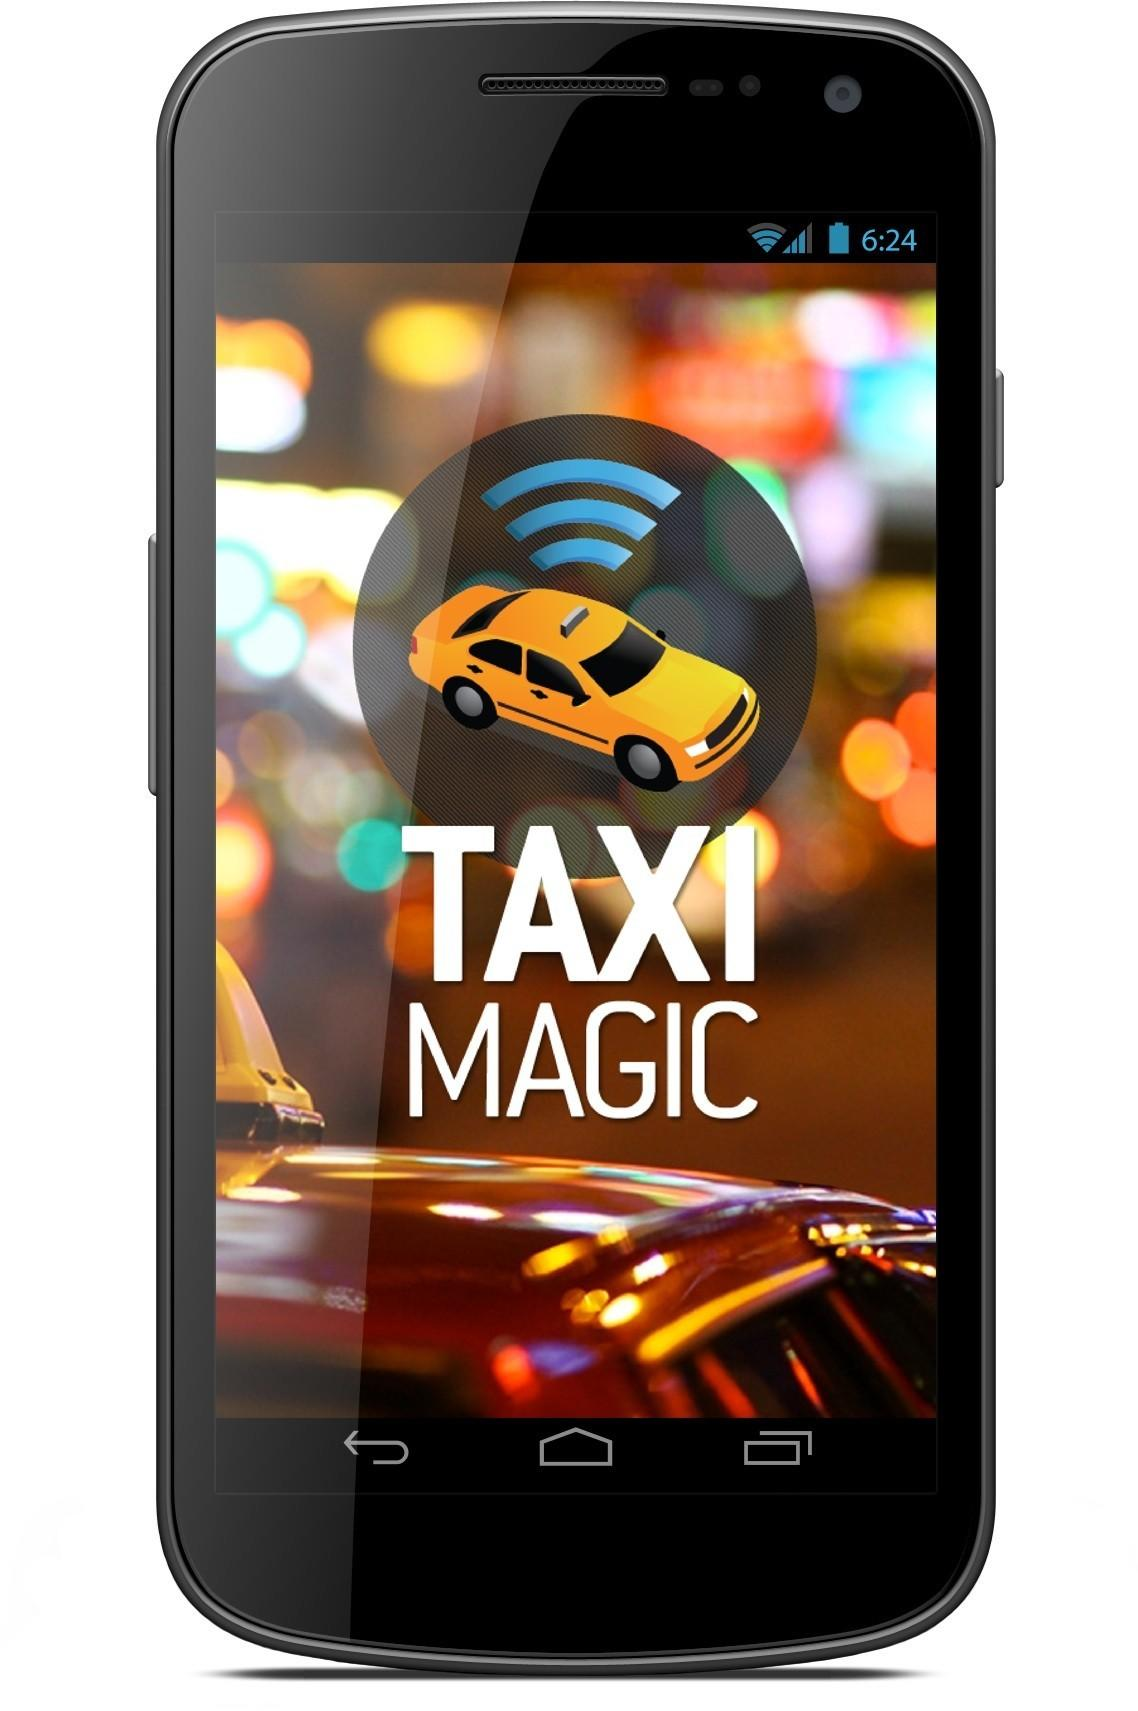 The Taxi Magic app on an Android phone. Customer who use the app this week can get a free $15 cab ride.